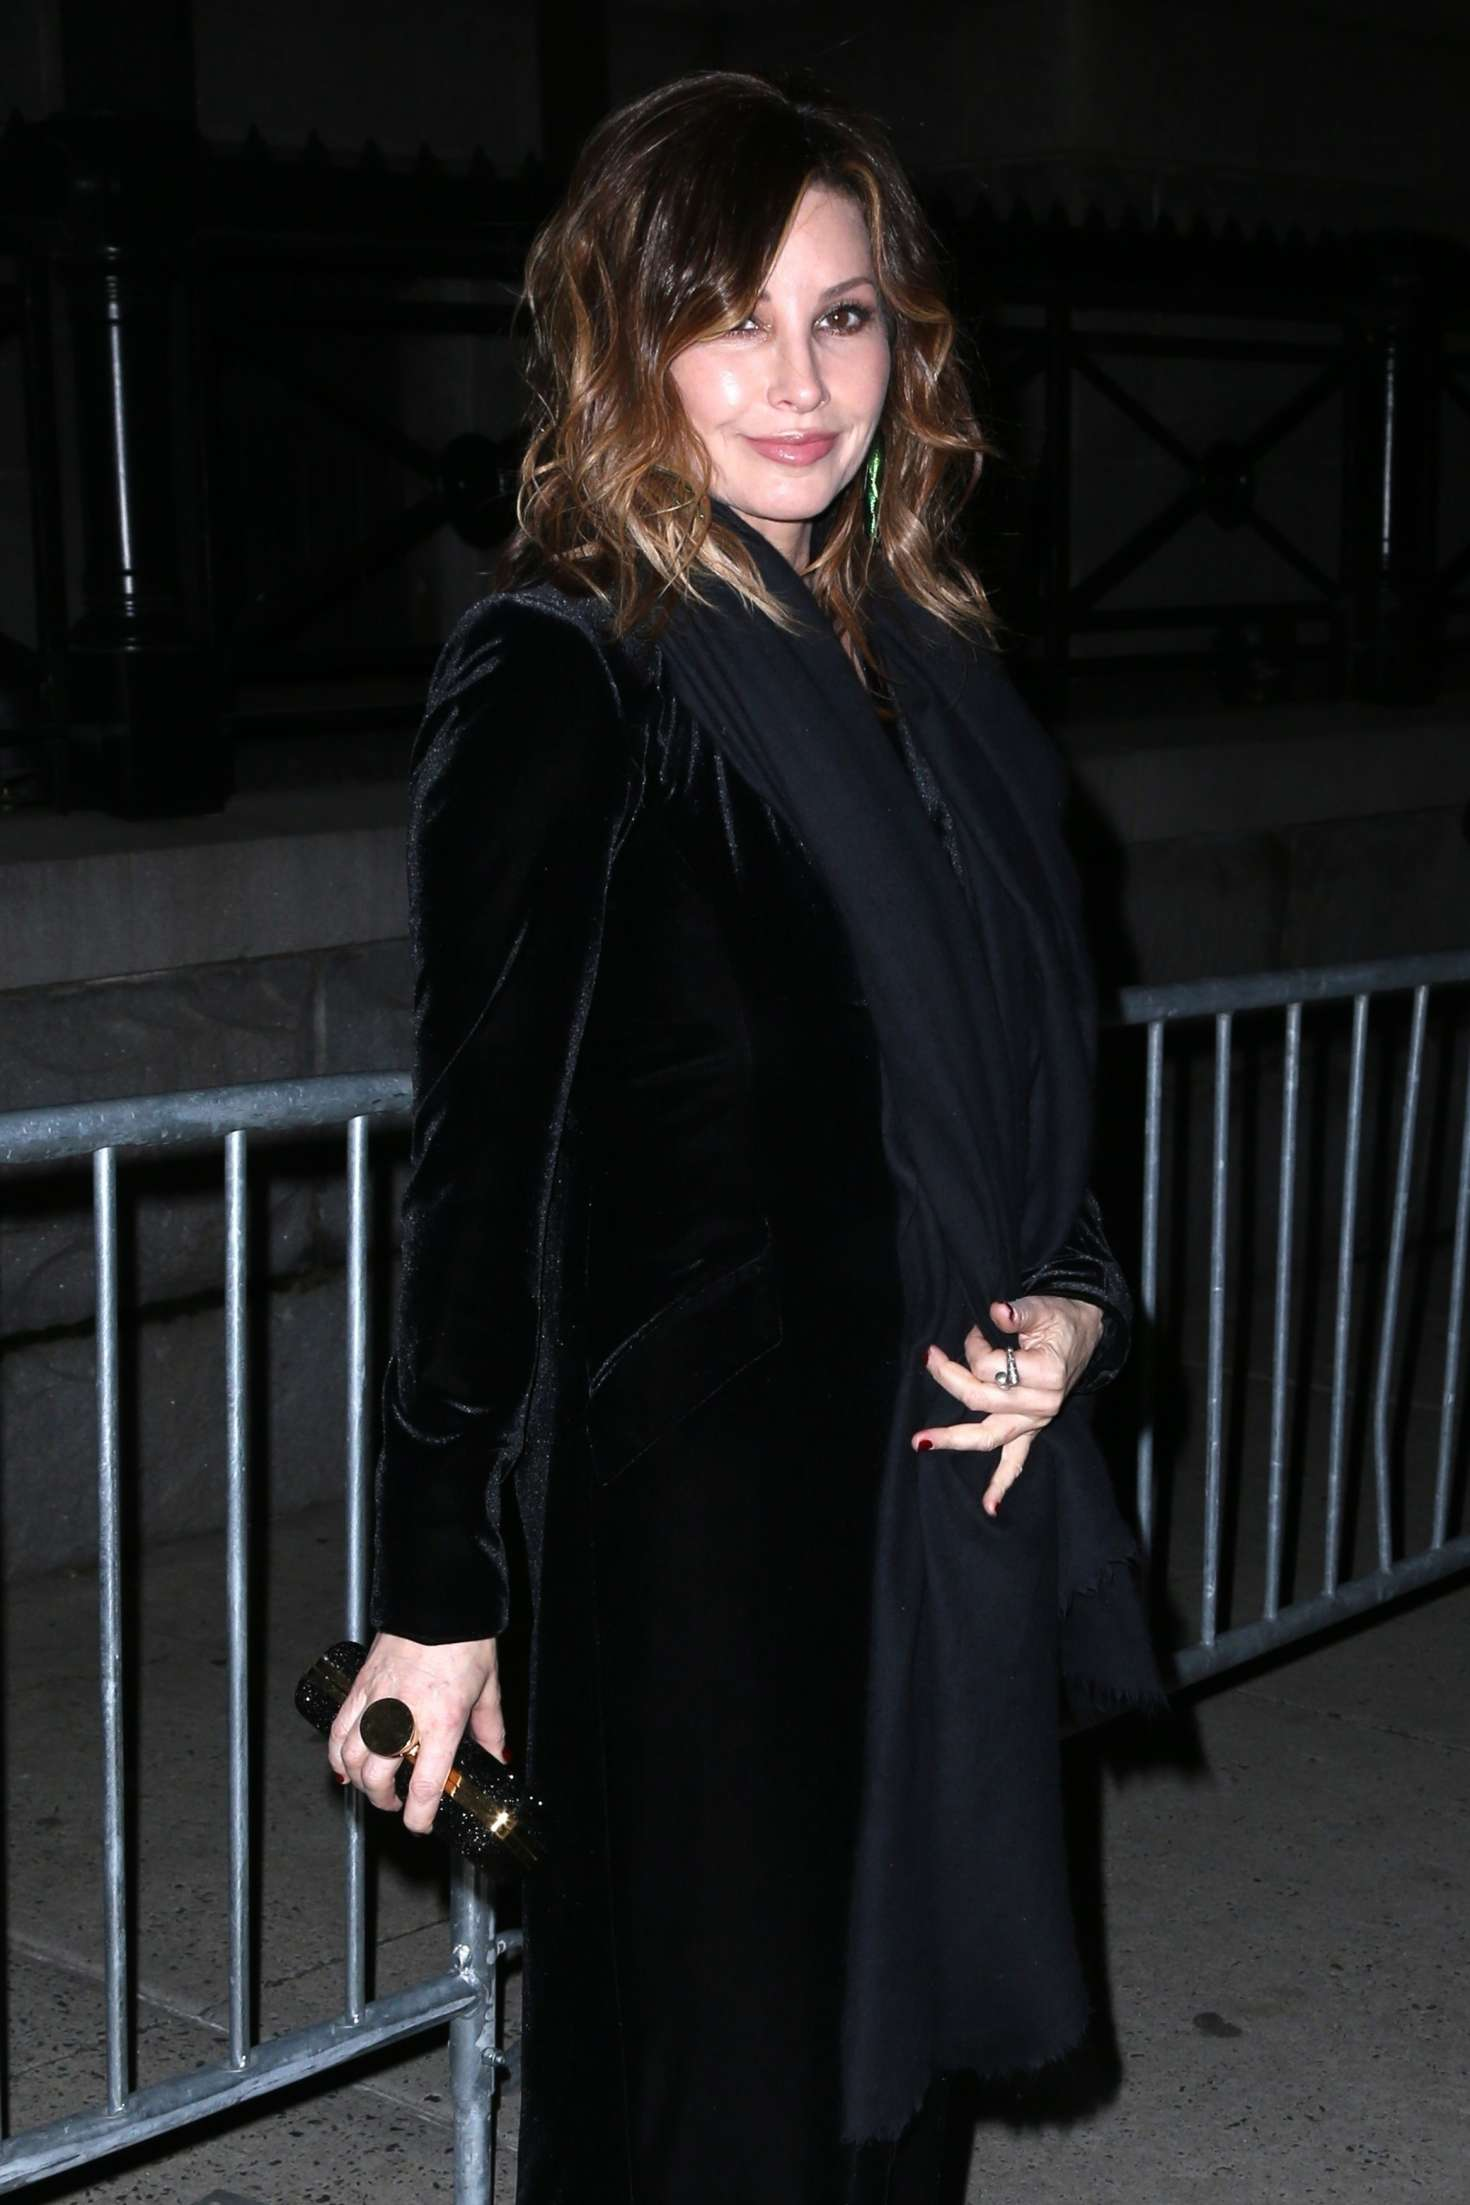 Gina Gershon - Arrives at Tom Ford Fashion Show in New York